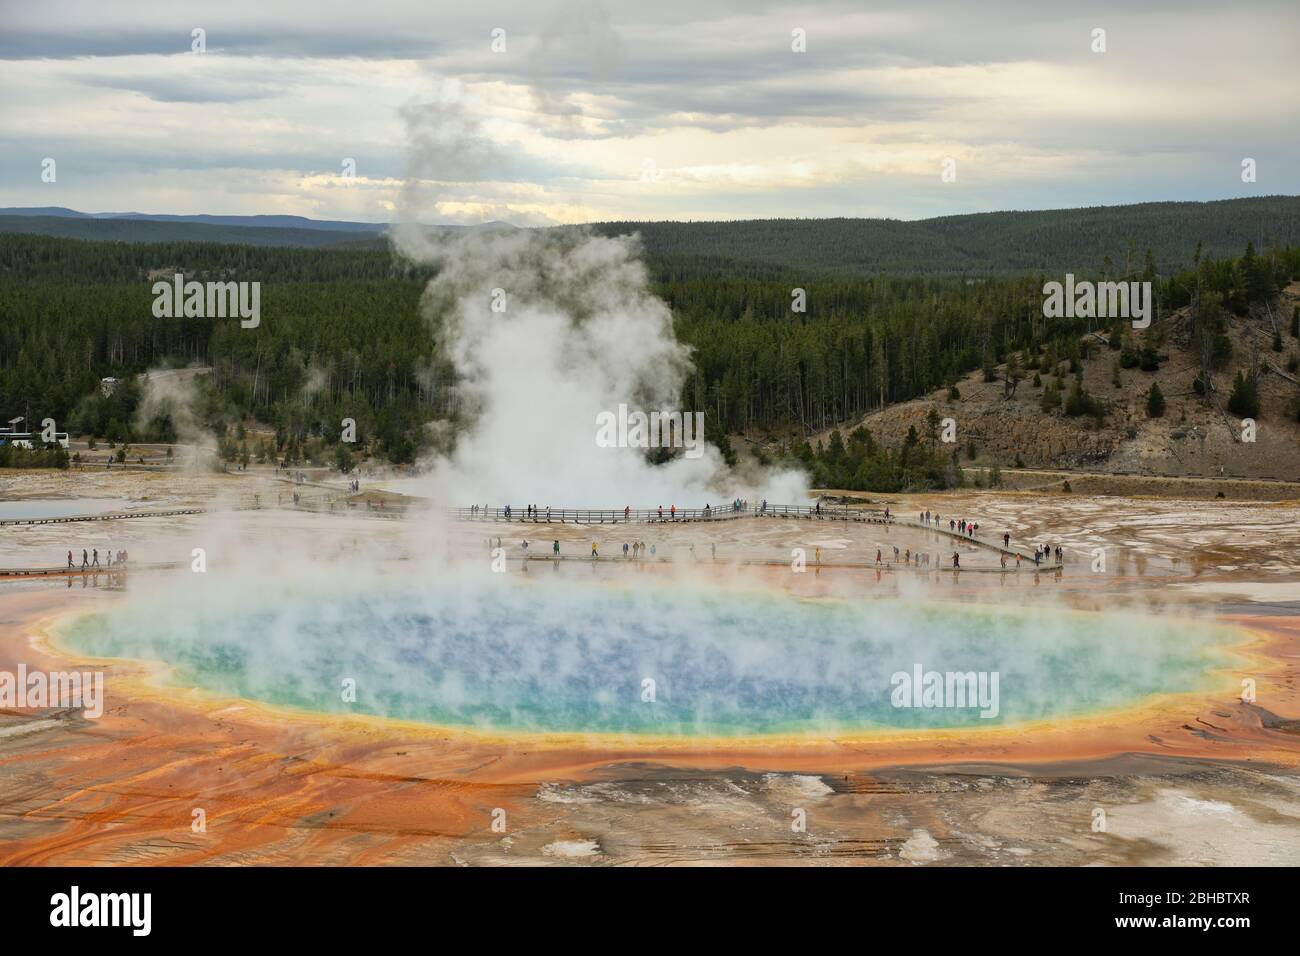 Aerial view of Grand Prismatic Spring in Midway Geyser Basin, Yellowstone National Park, Wyoming, USA. It is the largest hot spring in the United Stat Stock Photo